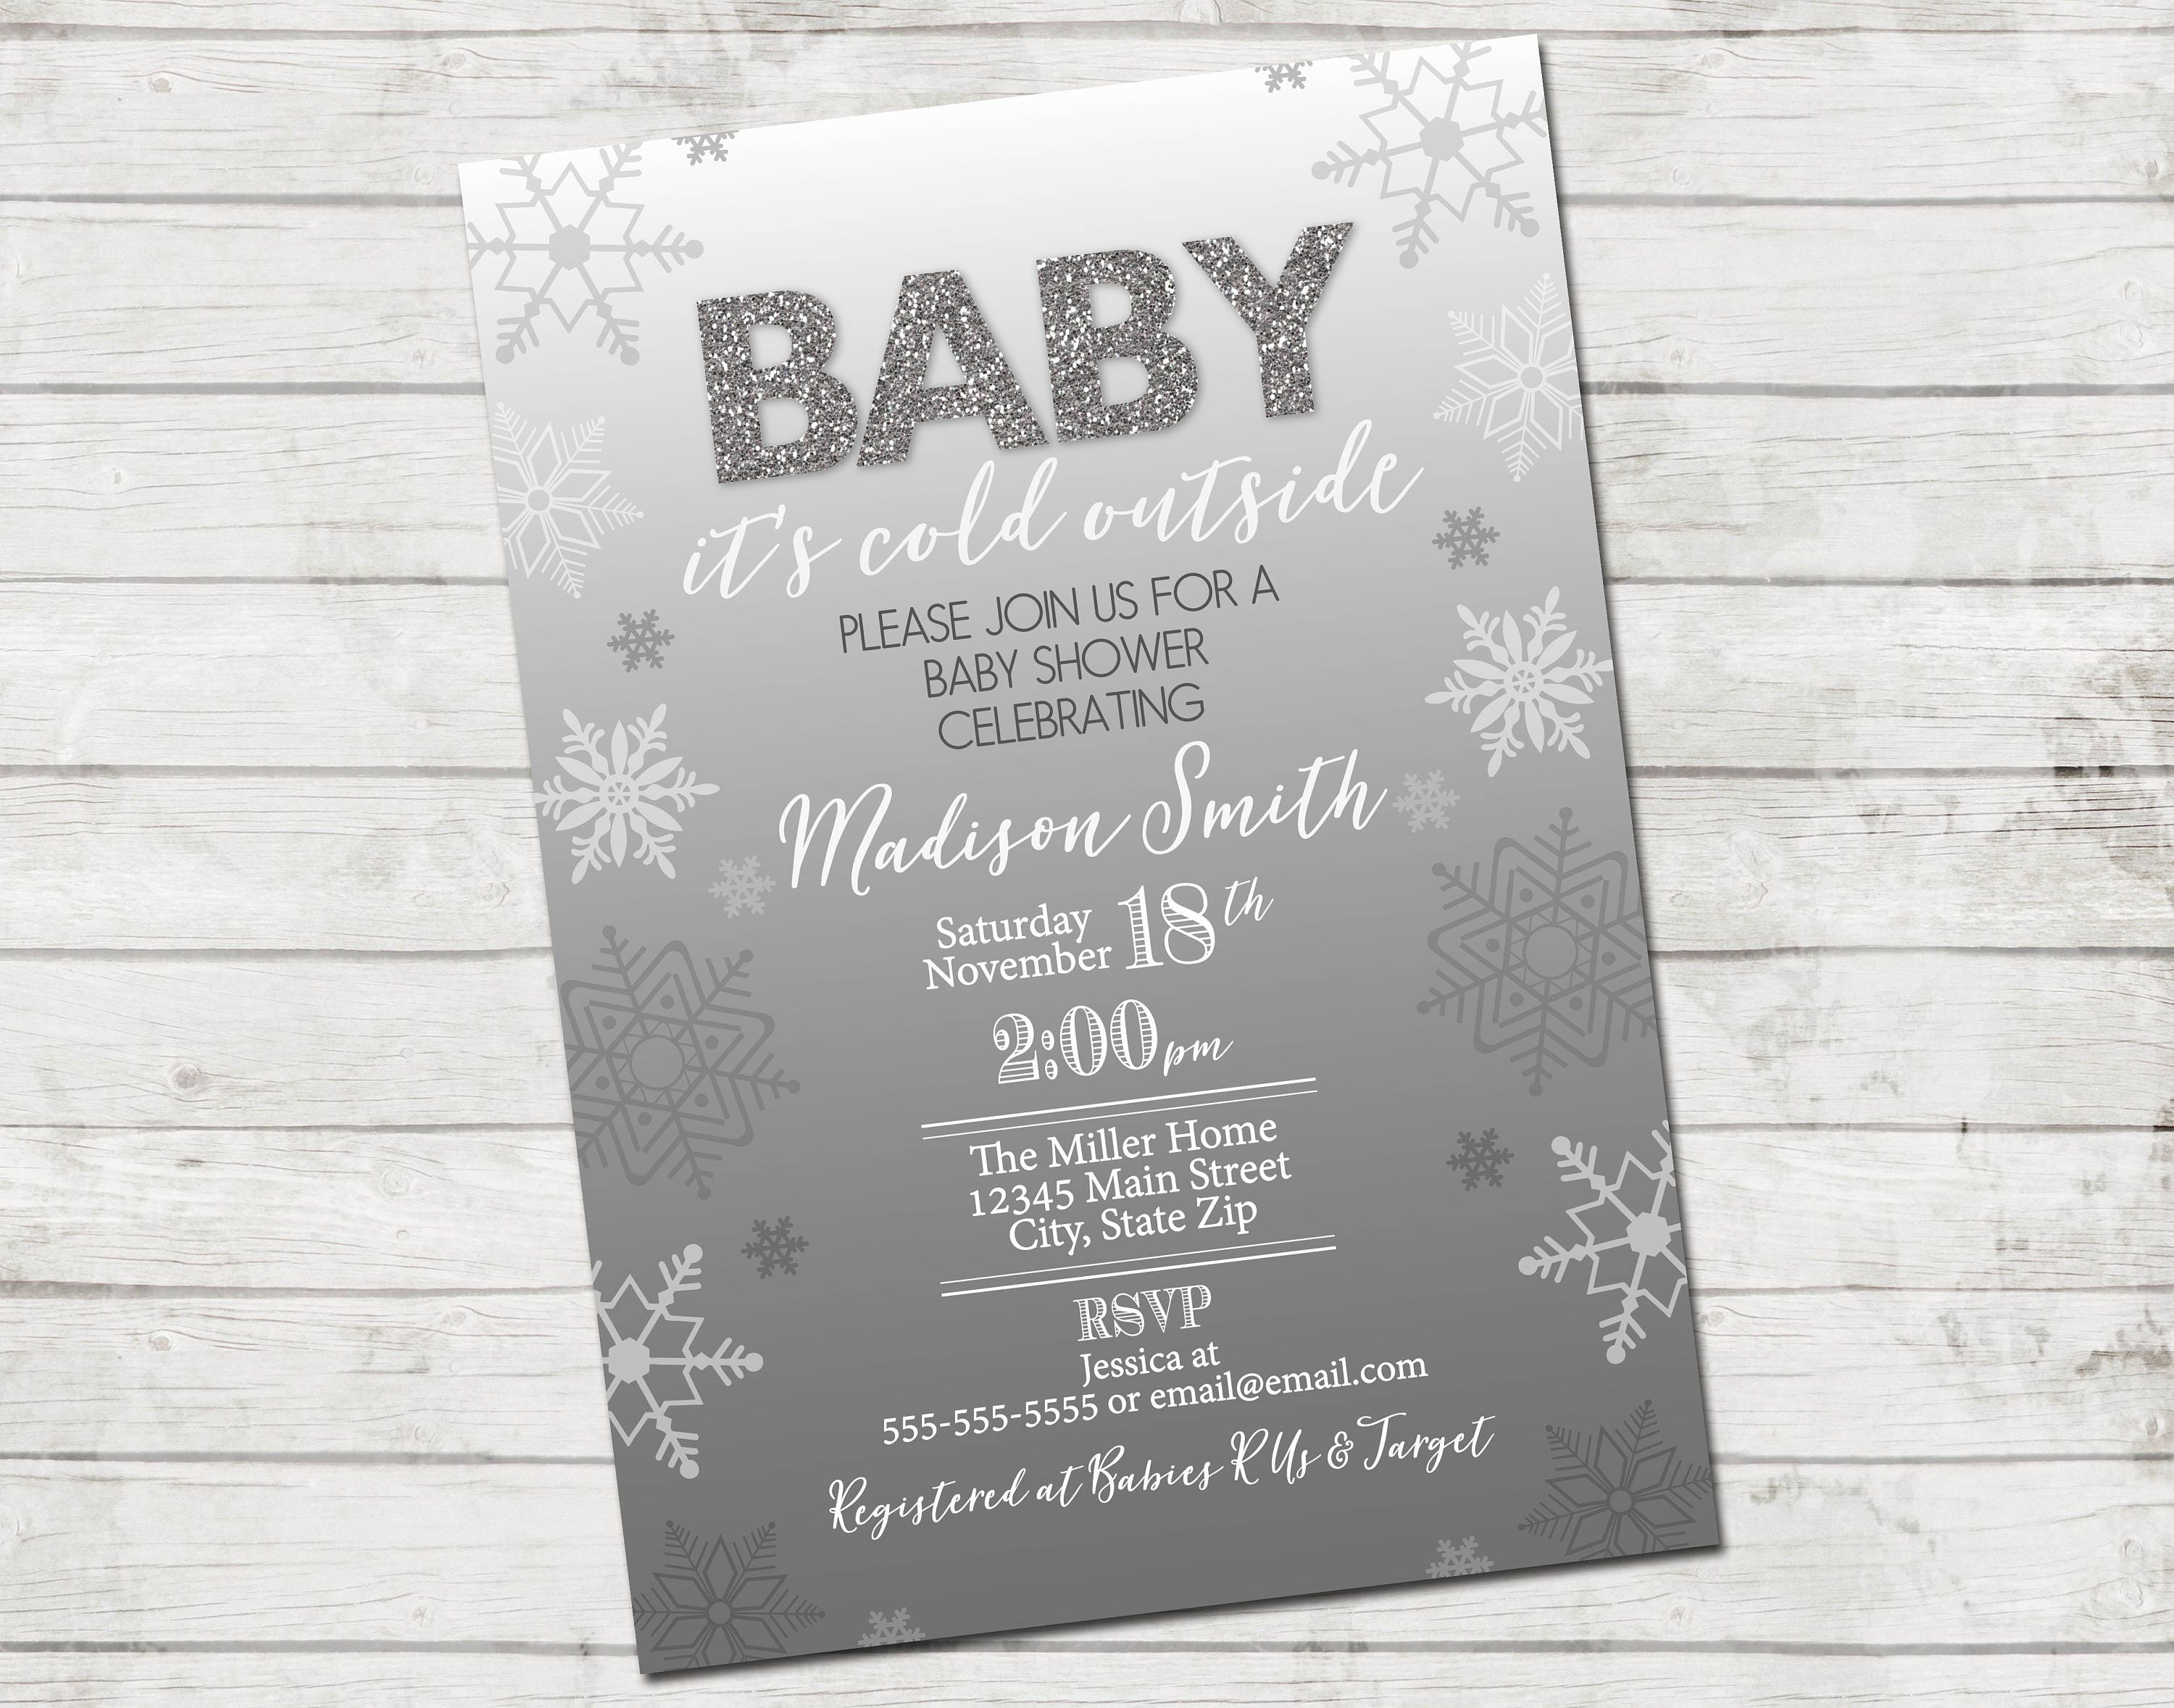 Email Baby Shower Invitations Email latest new year wishes images